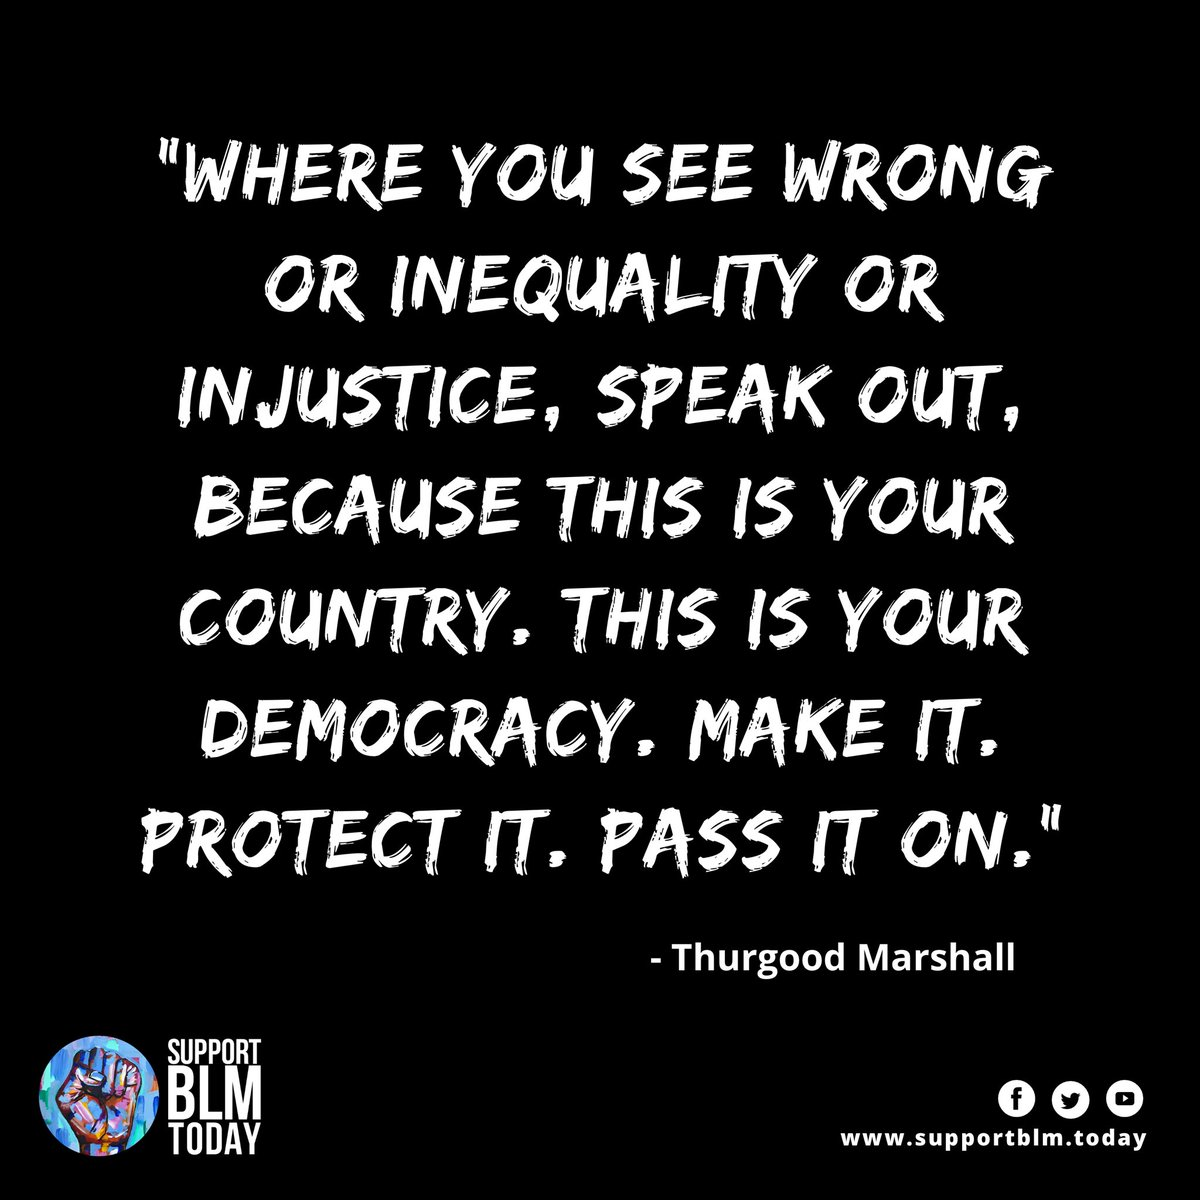 Make it. Protect it. Pass it on    #blacklivesmatter #blmquotes #blm #blm2021 #equality #racism #solidarity #blacklives #mlk #blmmovement #nojusticenopeace #blacklivesmatterplaza #blmprotest #blmfist